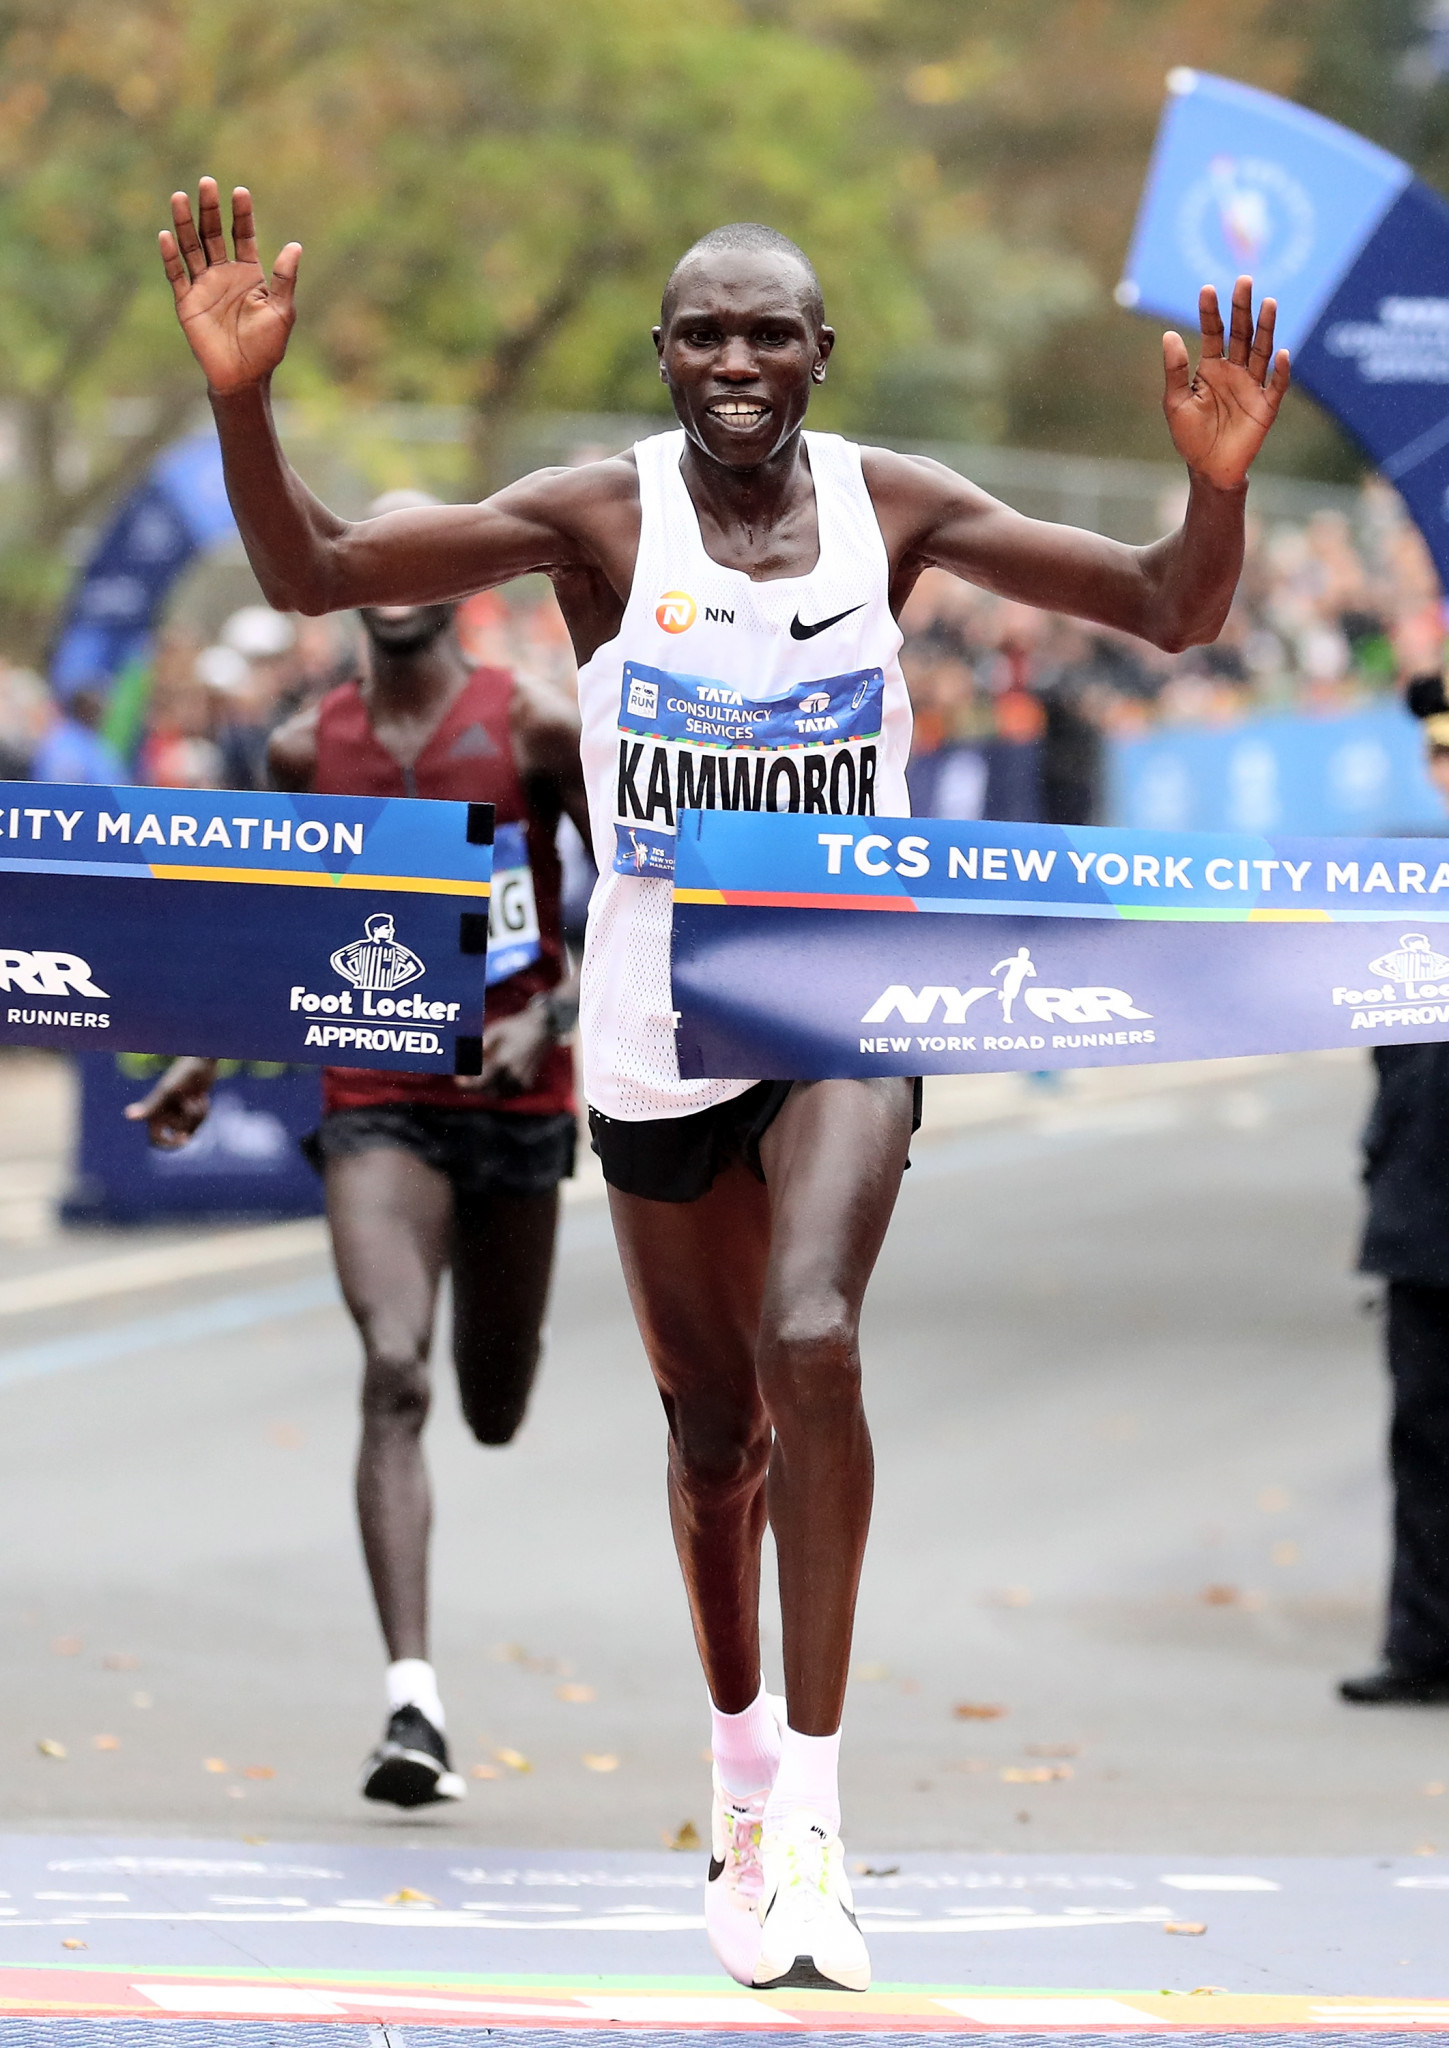 Geoffrey Kamworor, of Kenya, crosses the finish line as he wins the 2017 New York City Marathon in Central Park ©Getty Images